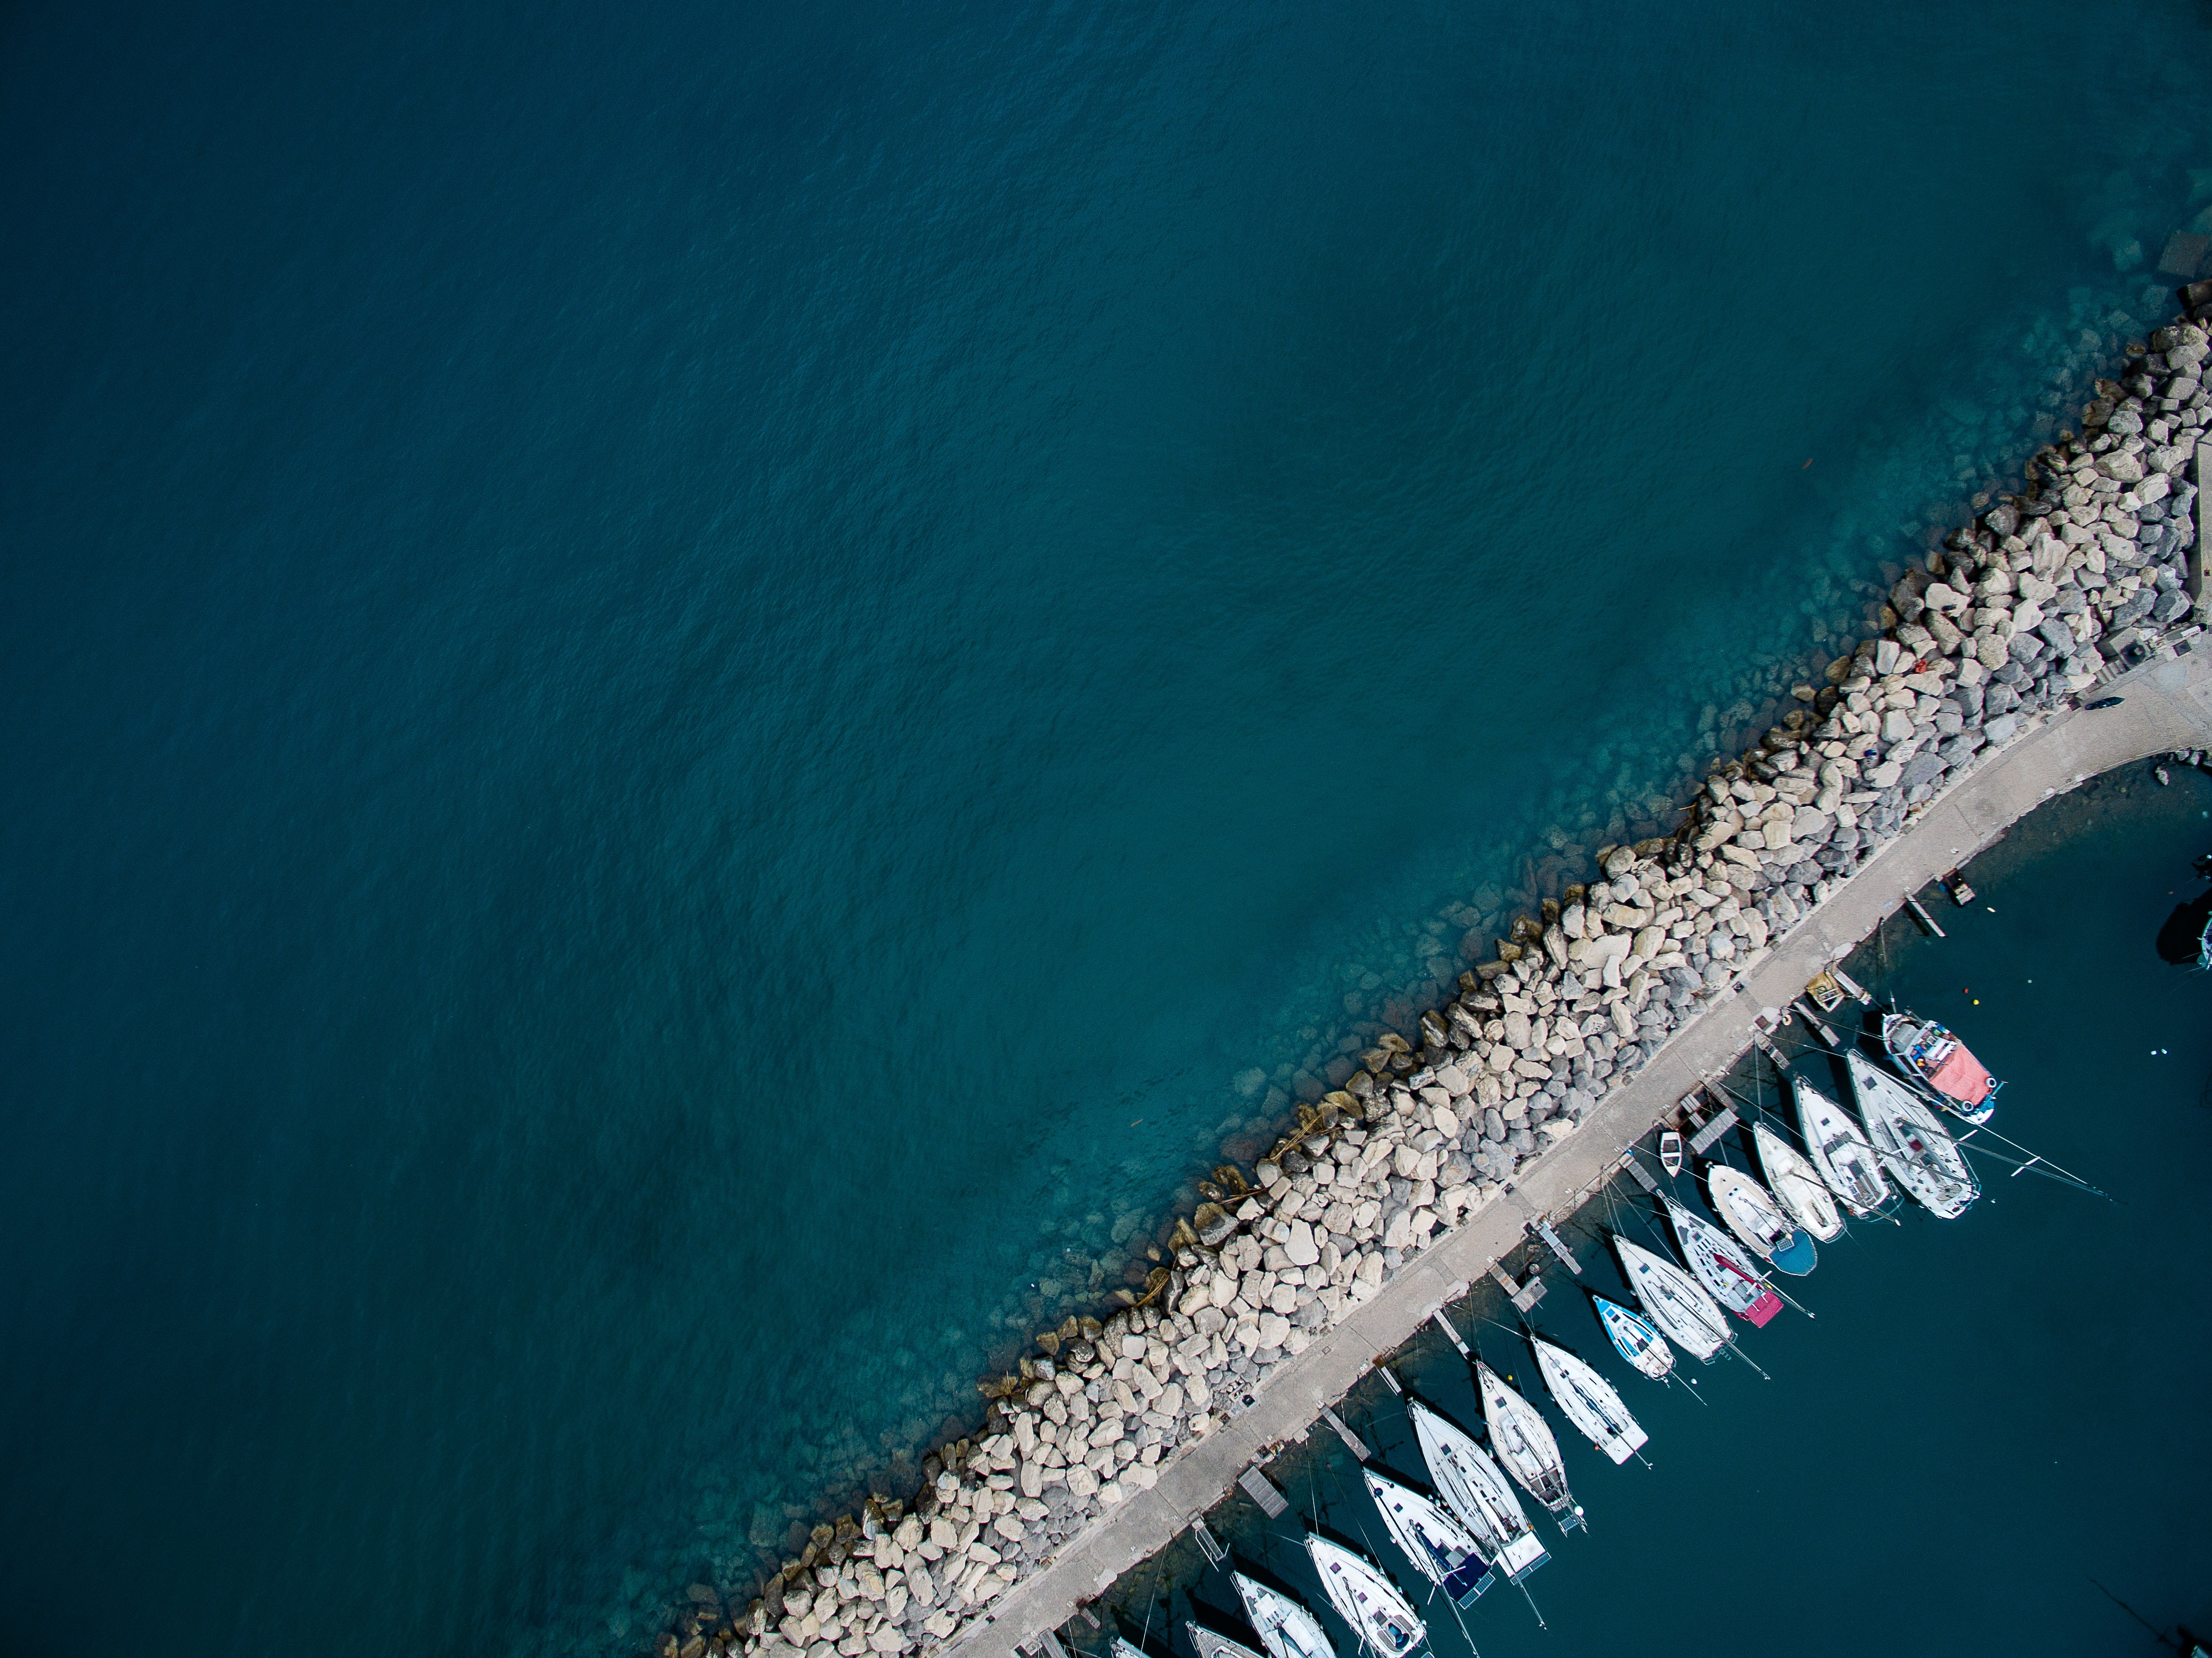 aerial photo of boats docked on pier